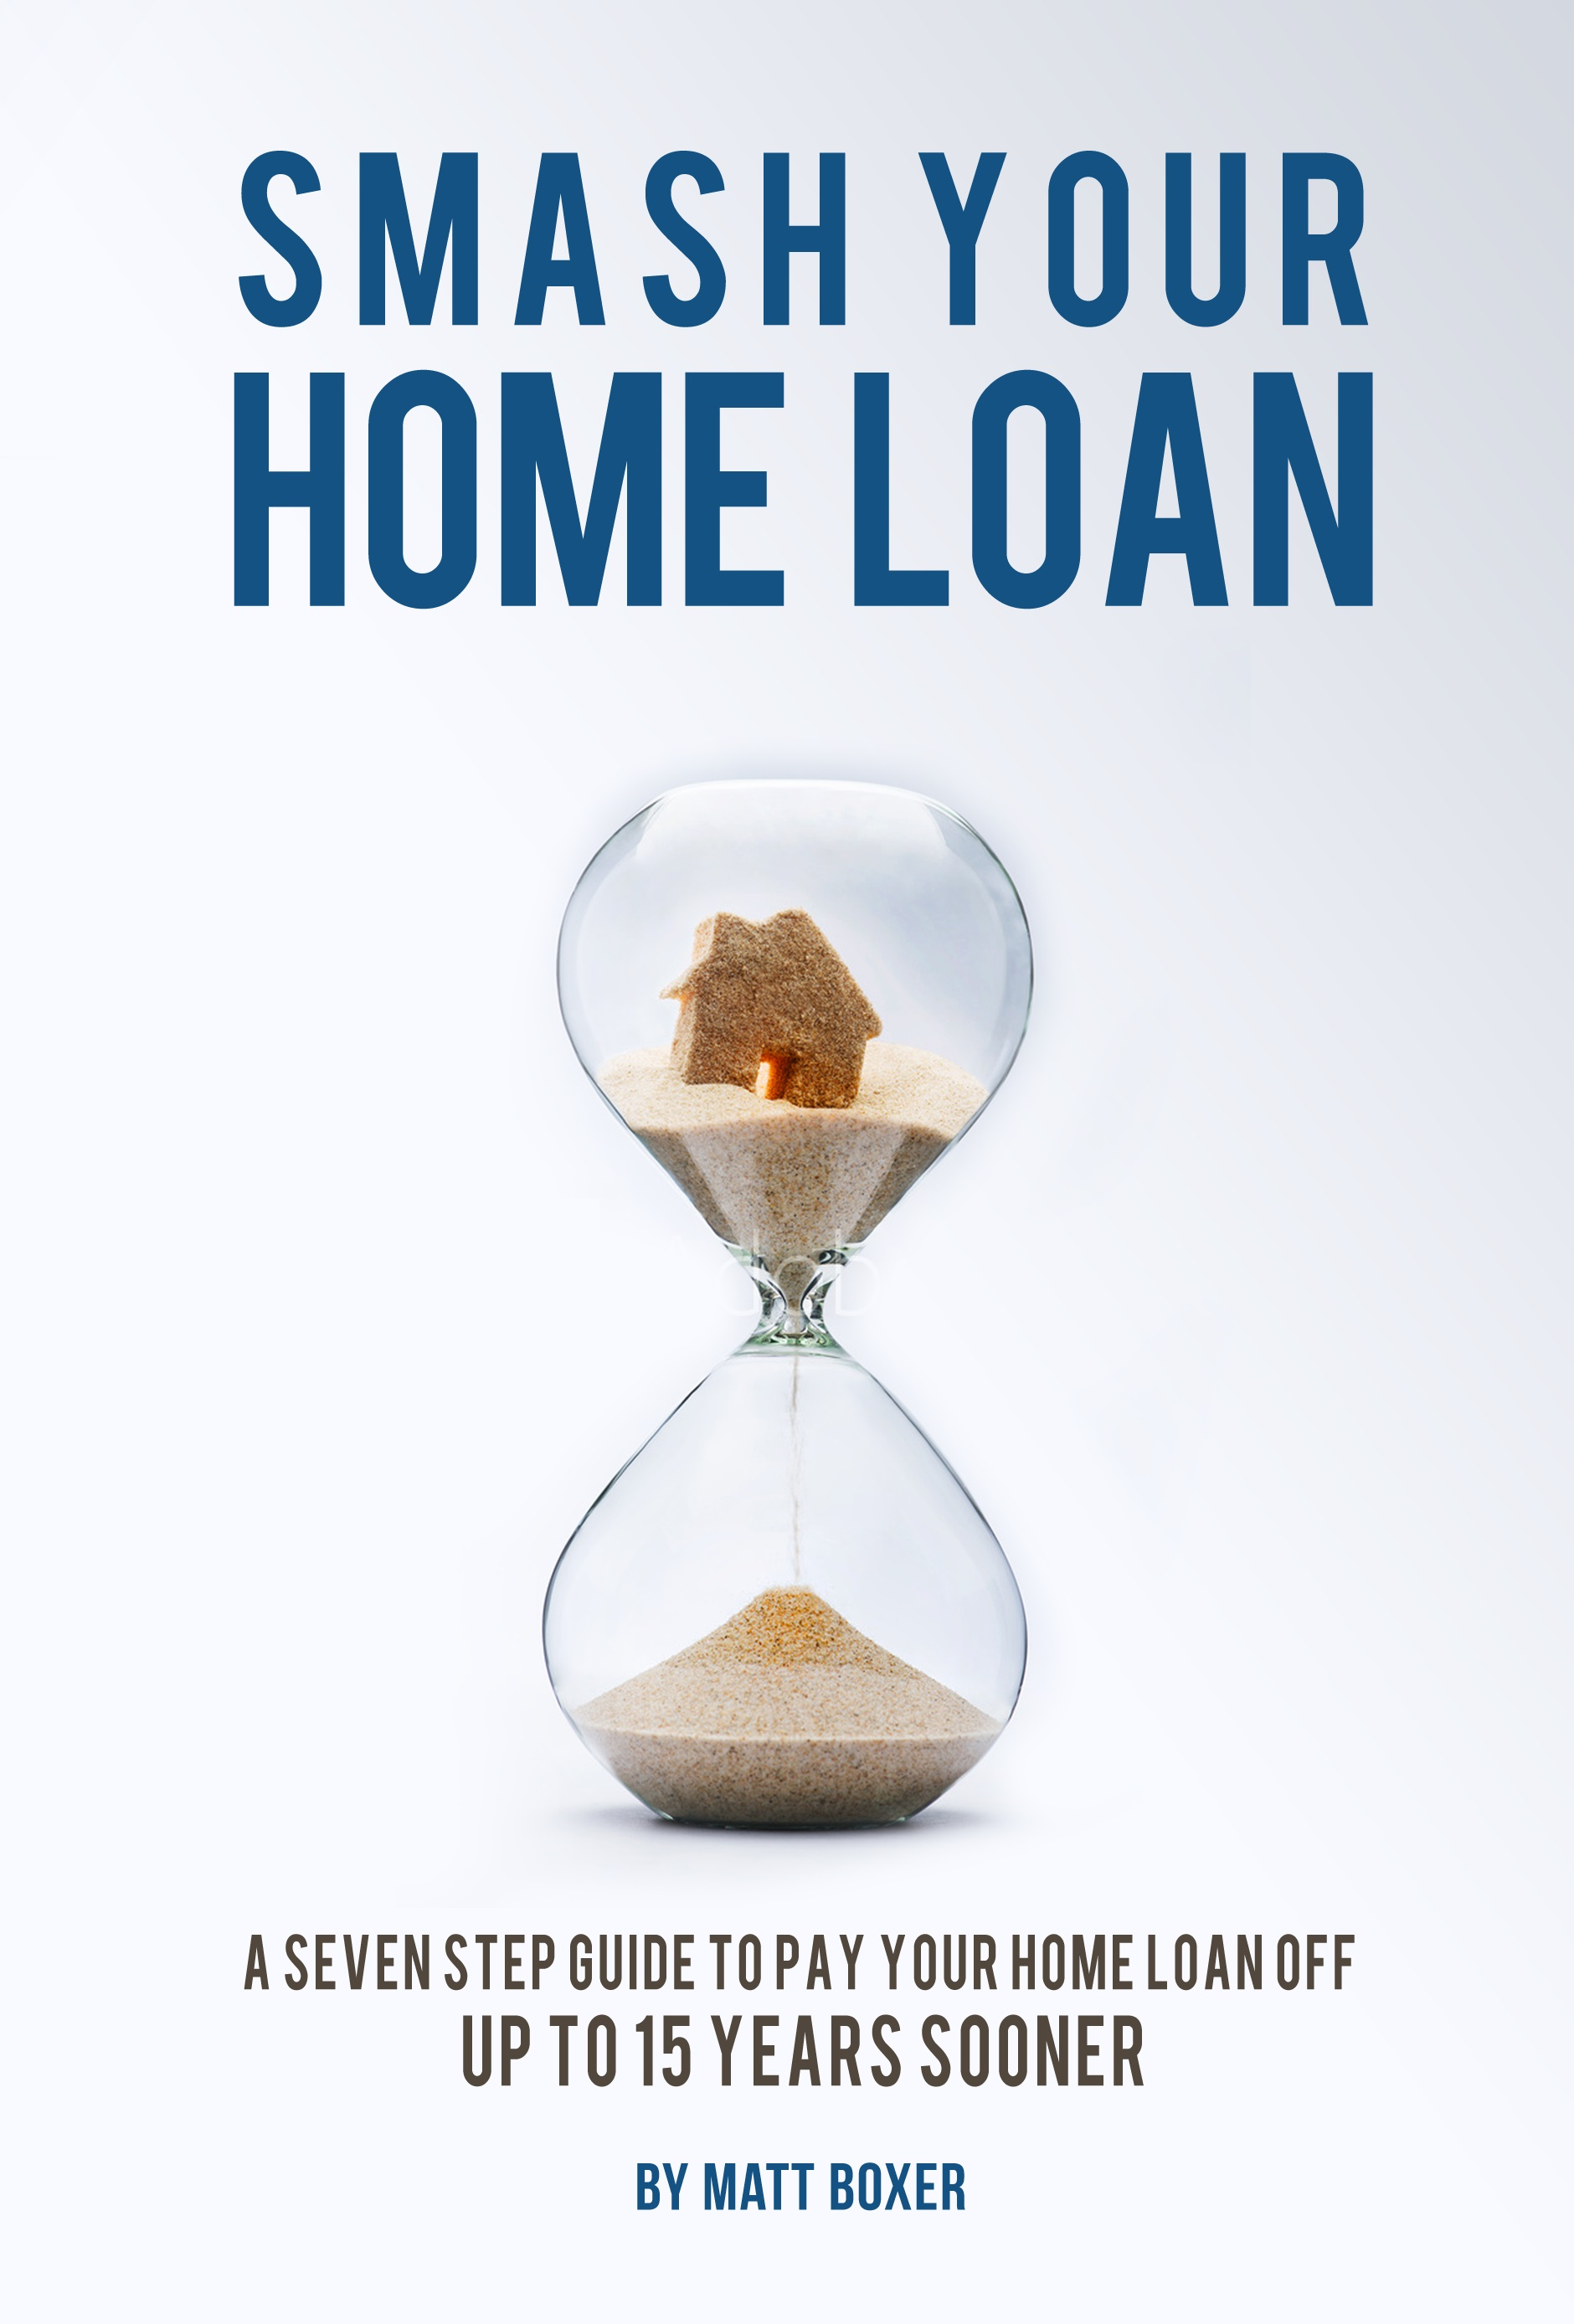 Shash your home loan book